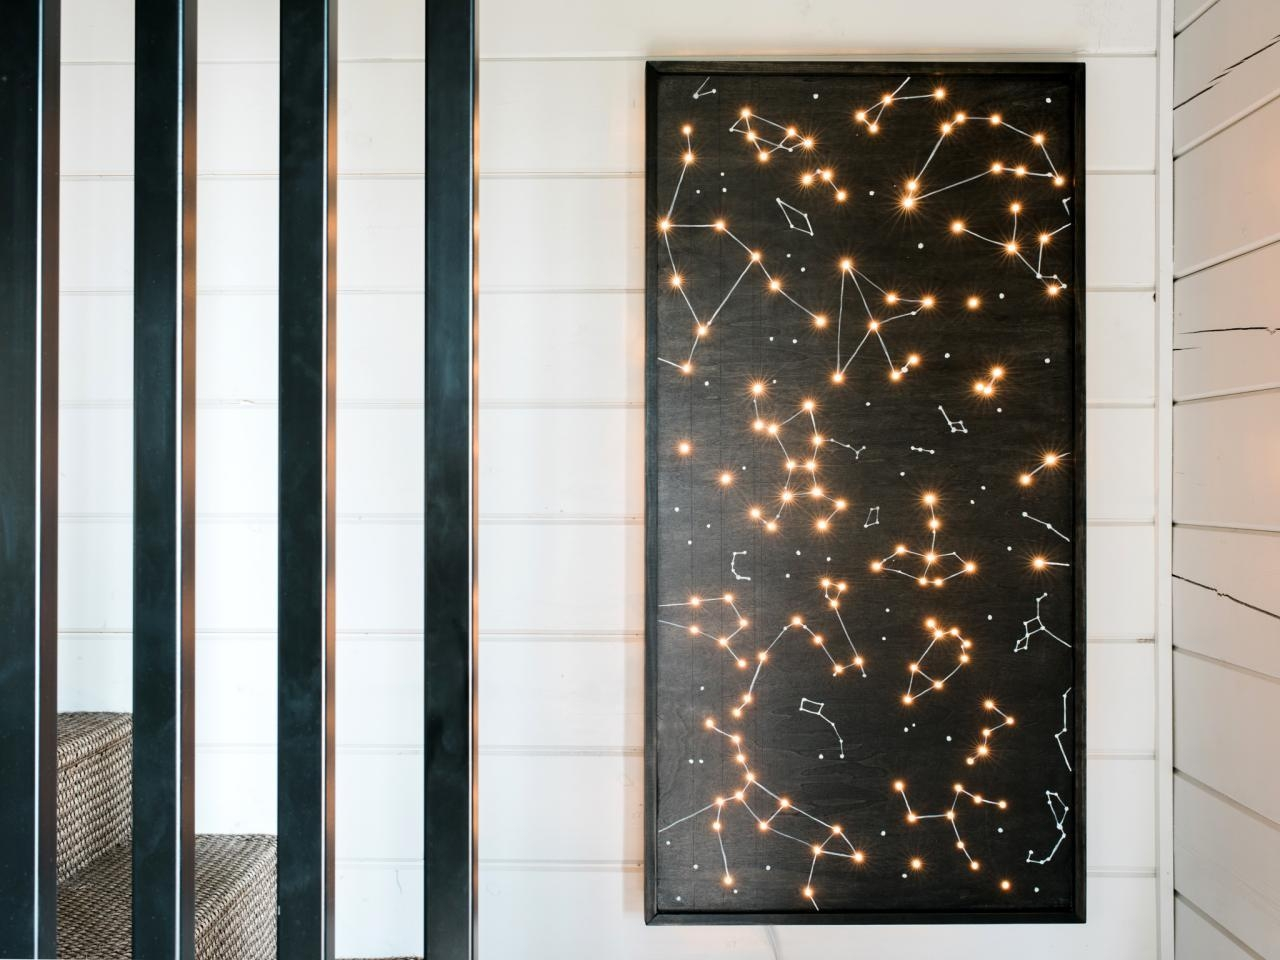 How To Make Illuminated Wall Art | How Tos | Diy With Regard To Wall Art Lighting (Image 10 of 20)